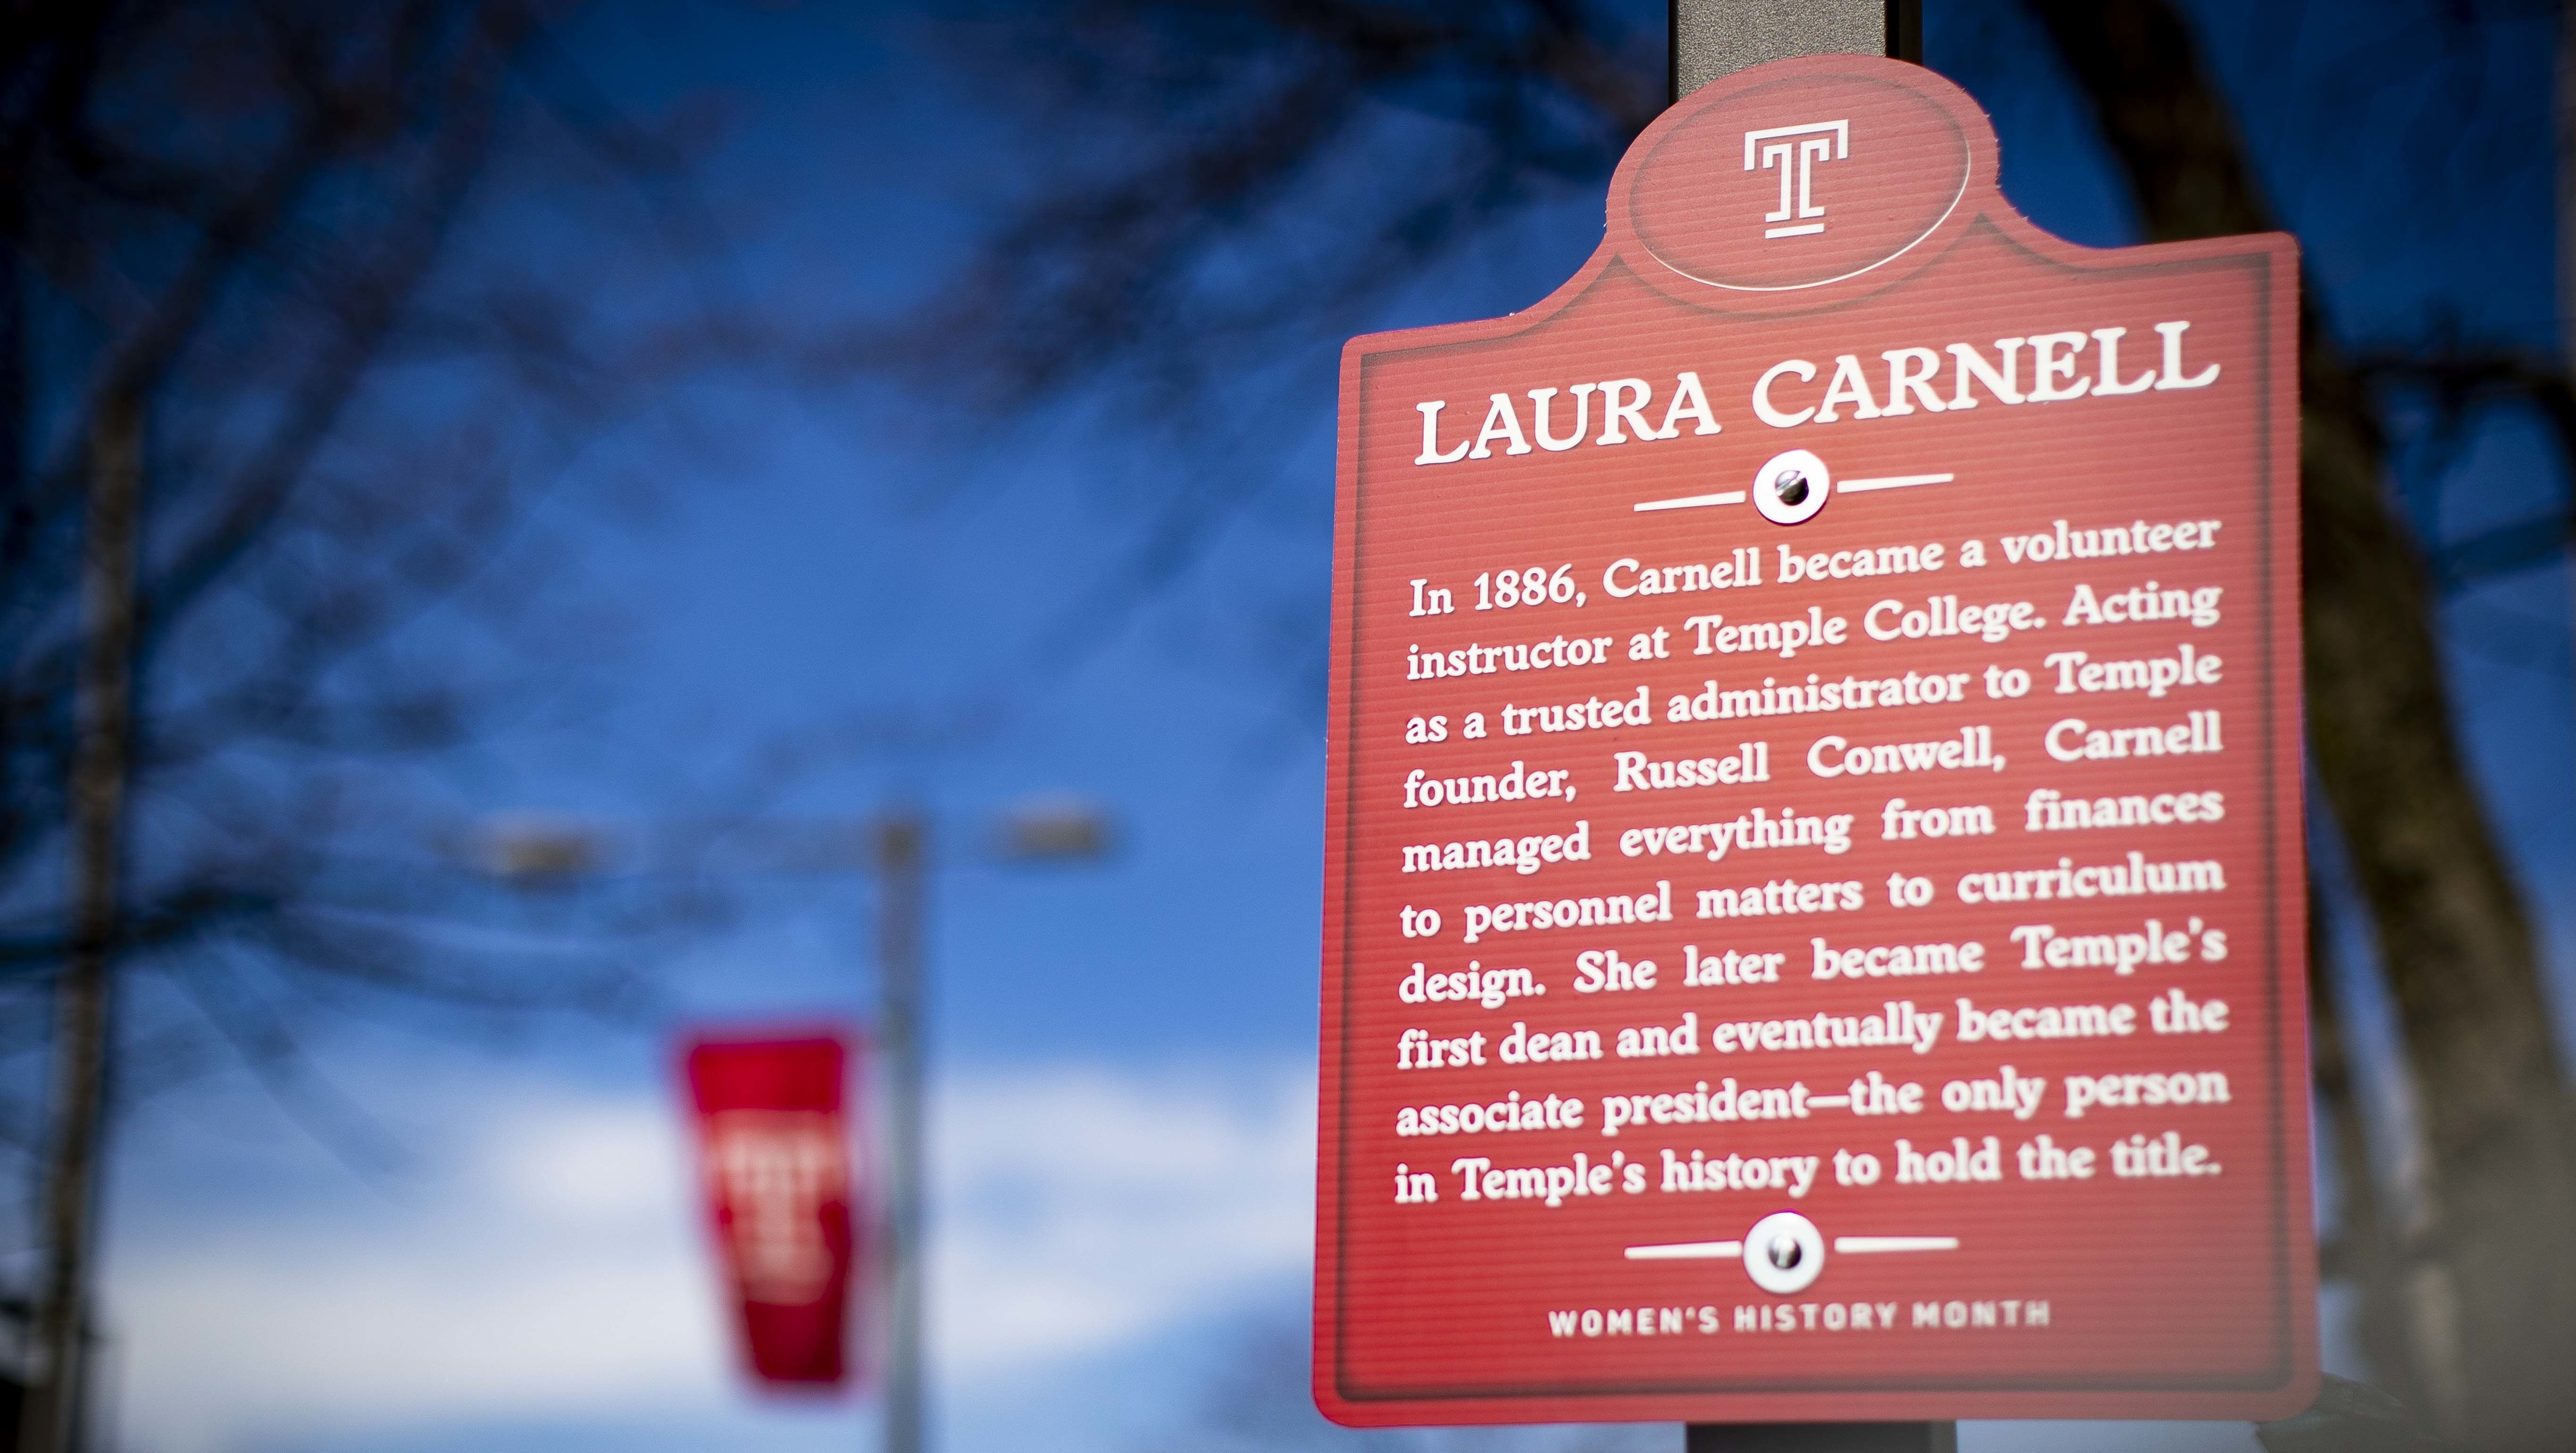 One of the historic markers installed on campus in honor of Women's History Month.